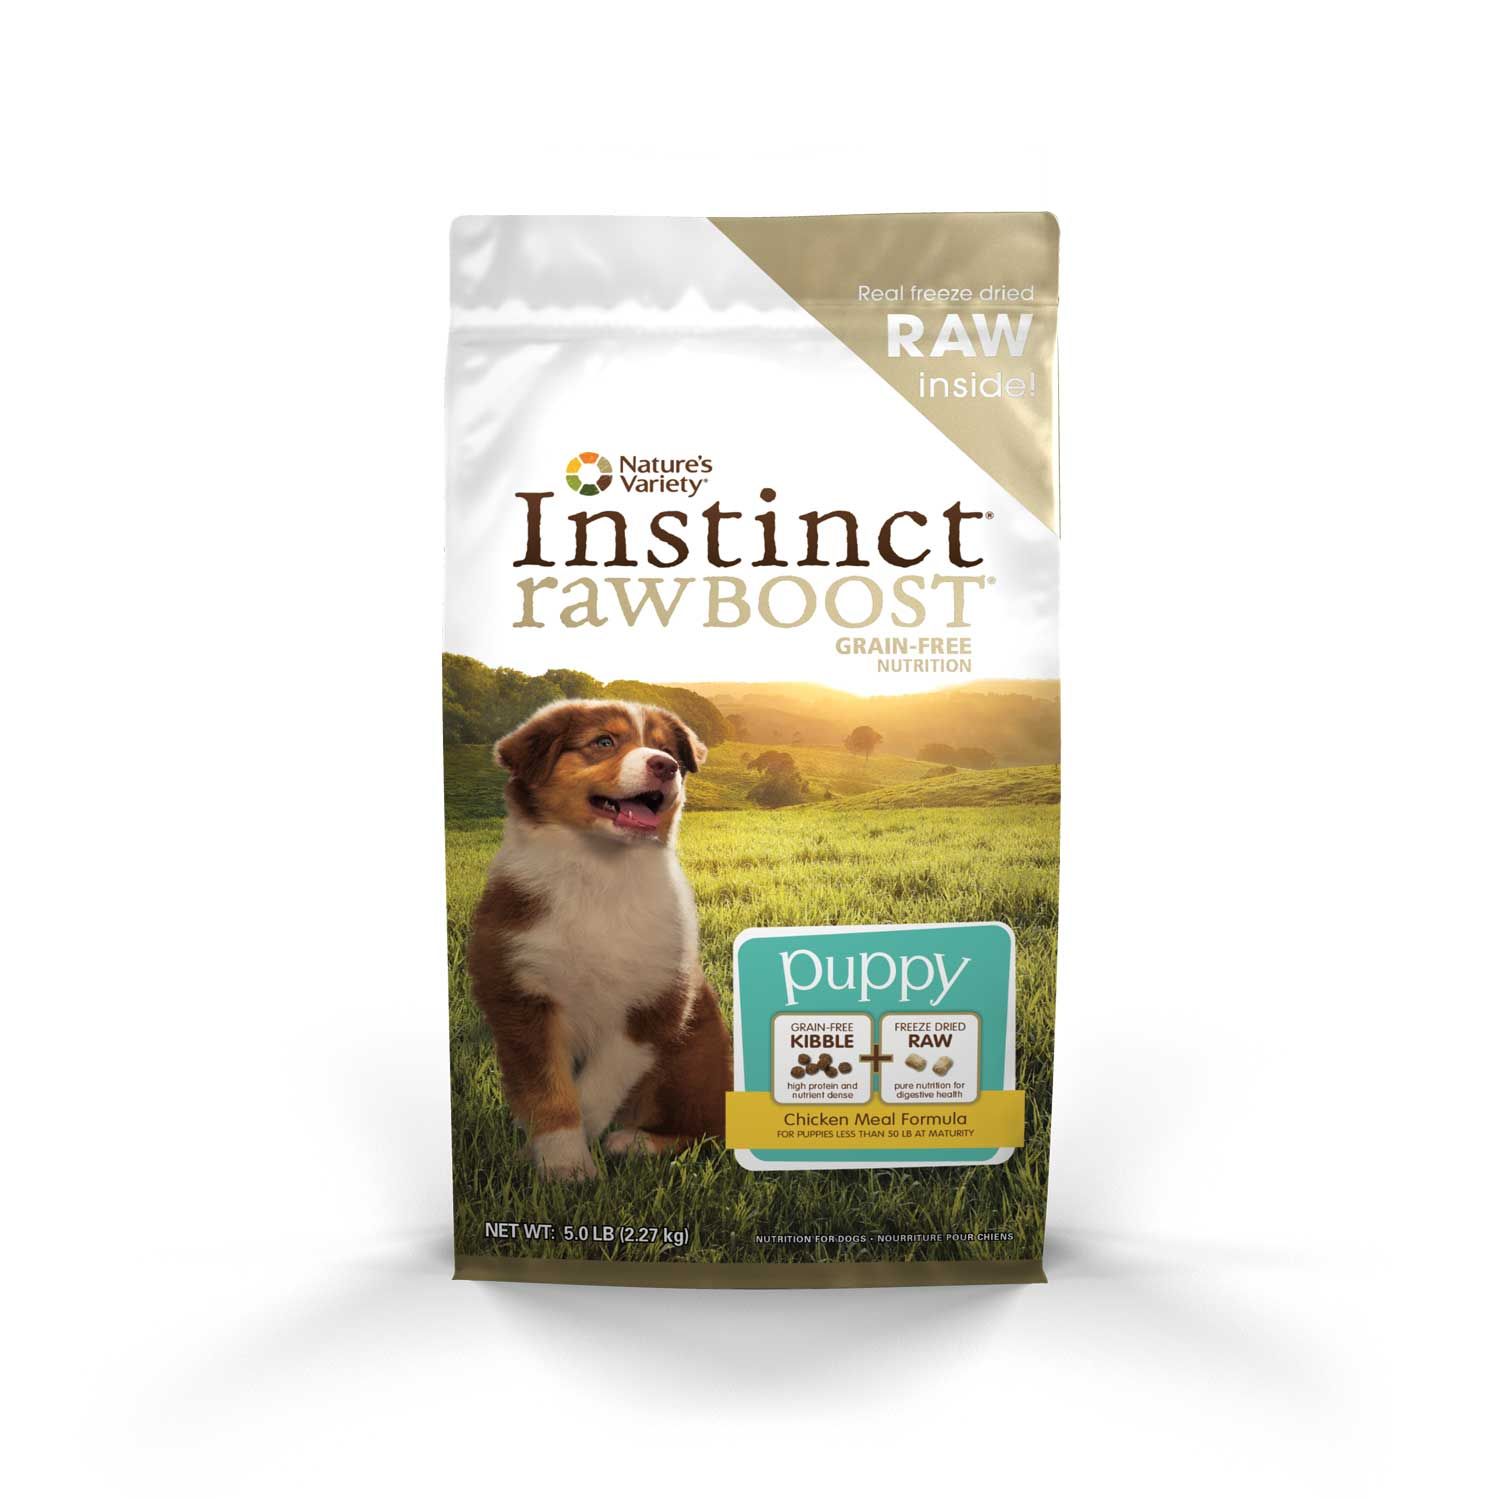 Nature's Variety Instinct Raw Boost Kibble for Puppies